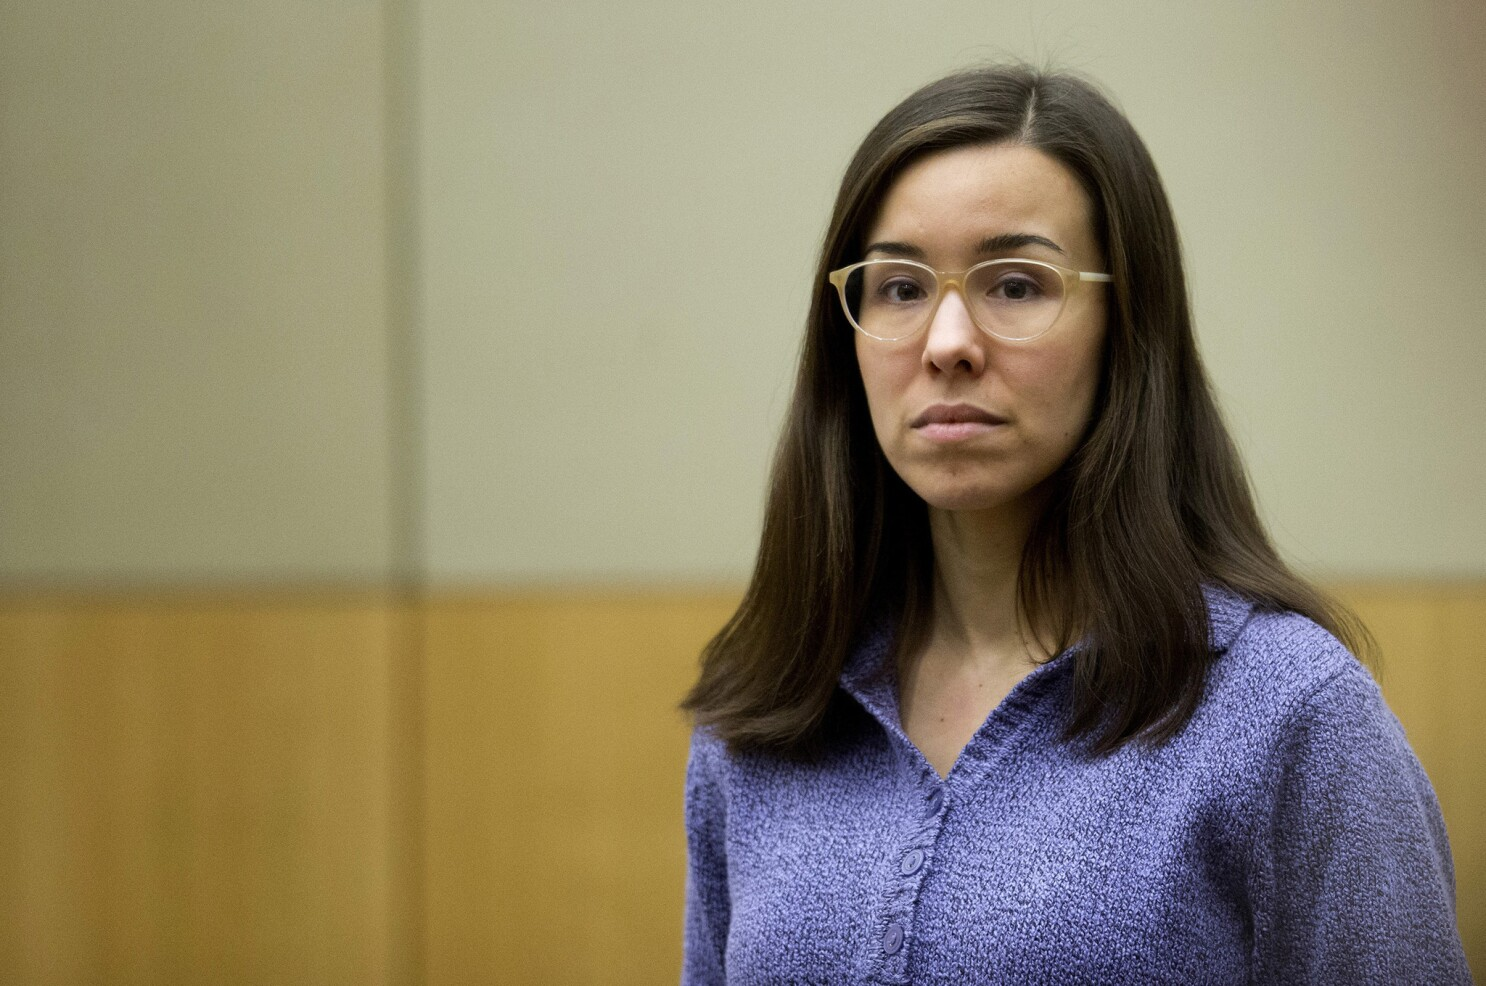 How the Jodi Arias case inflamed passions, yet stymied two juries - Los Angeles Times